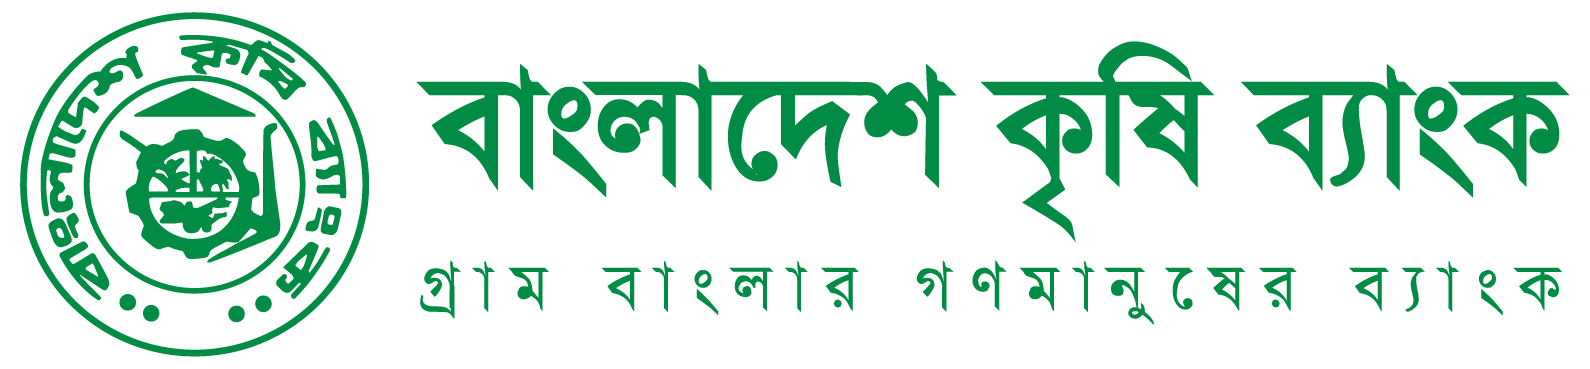 About- Bangladesh- Krishi- Bank- in- Bangladesh- Xpress- Money